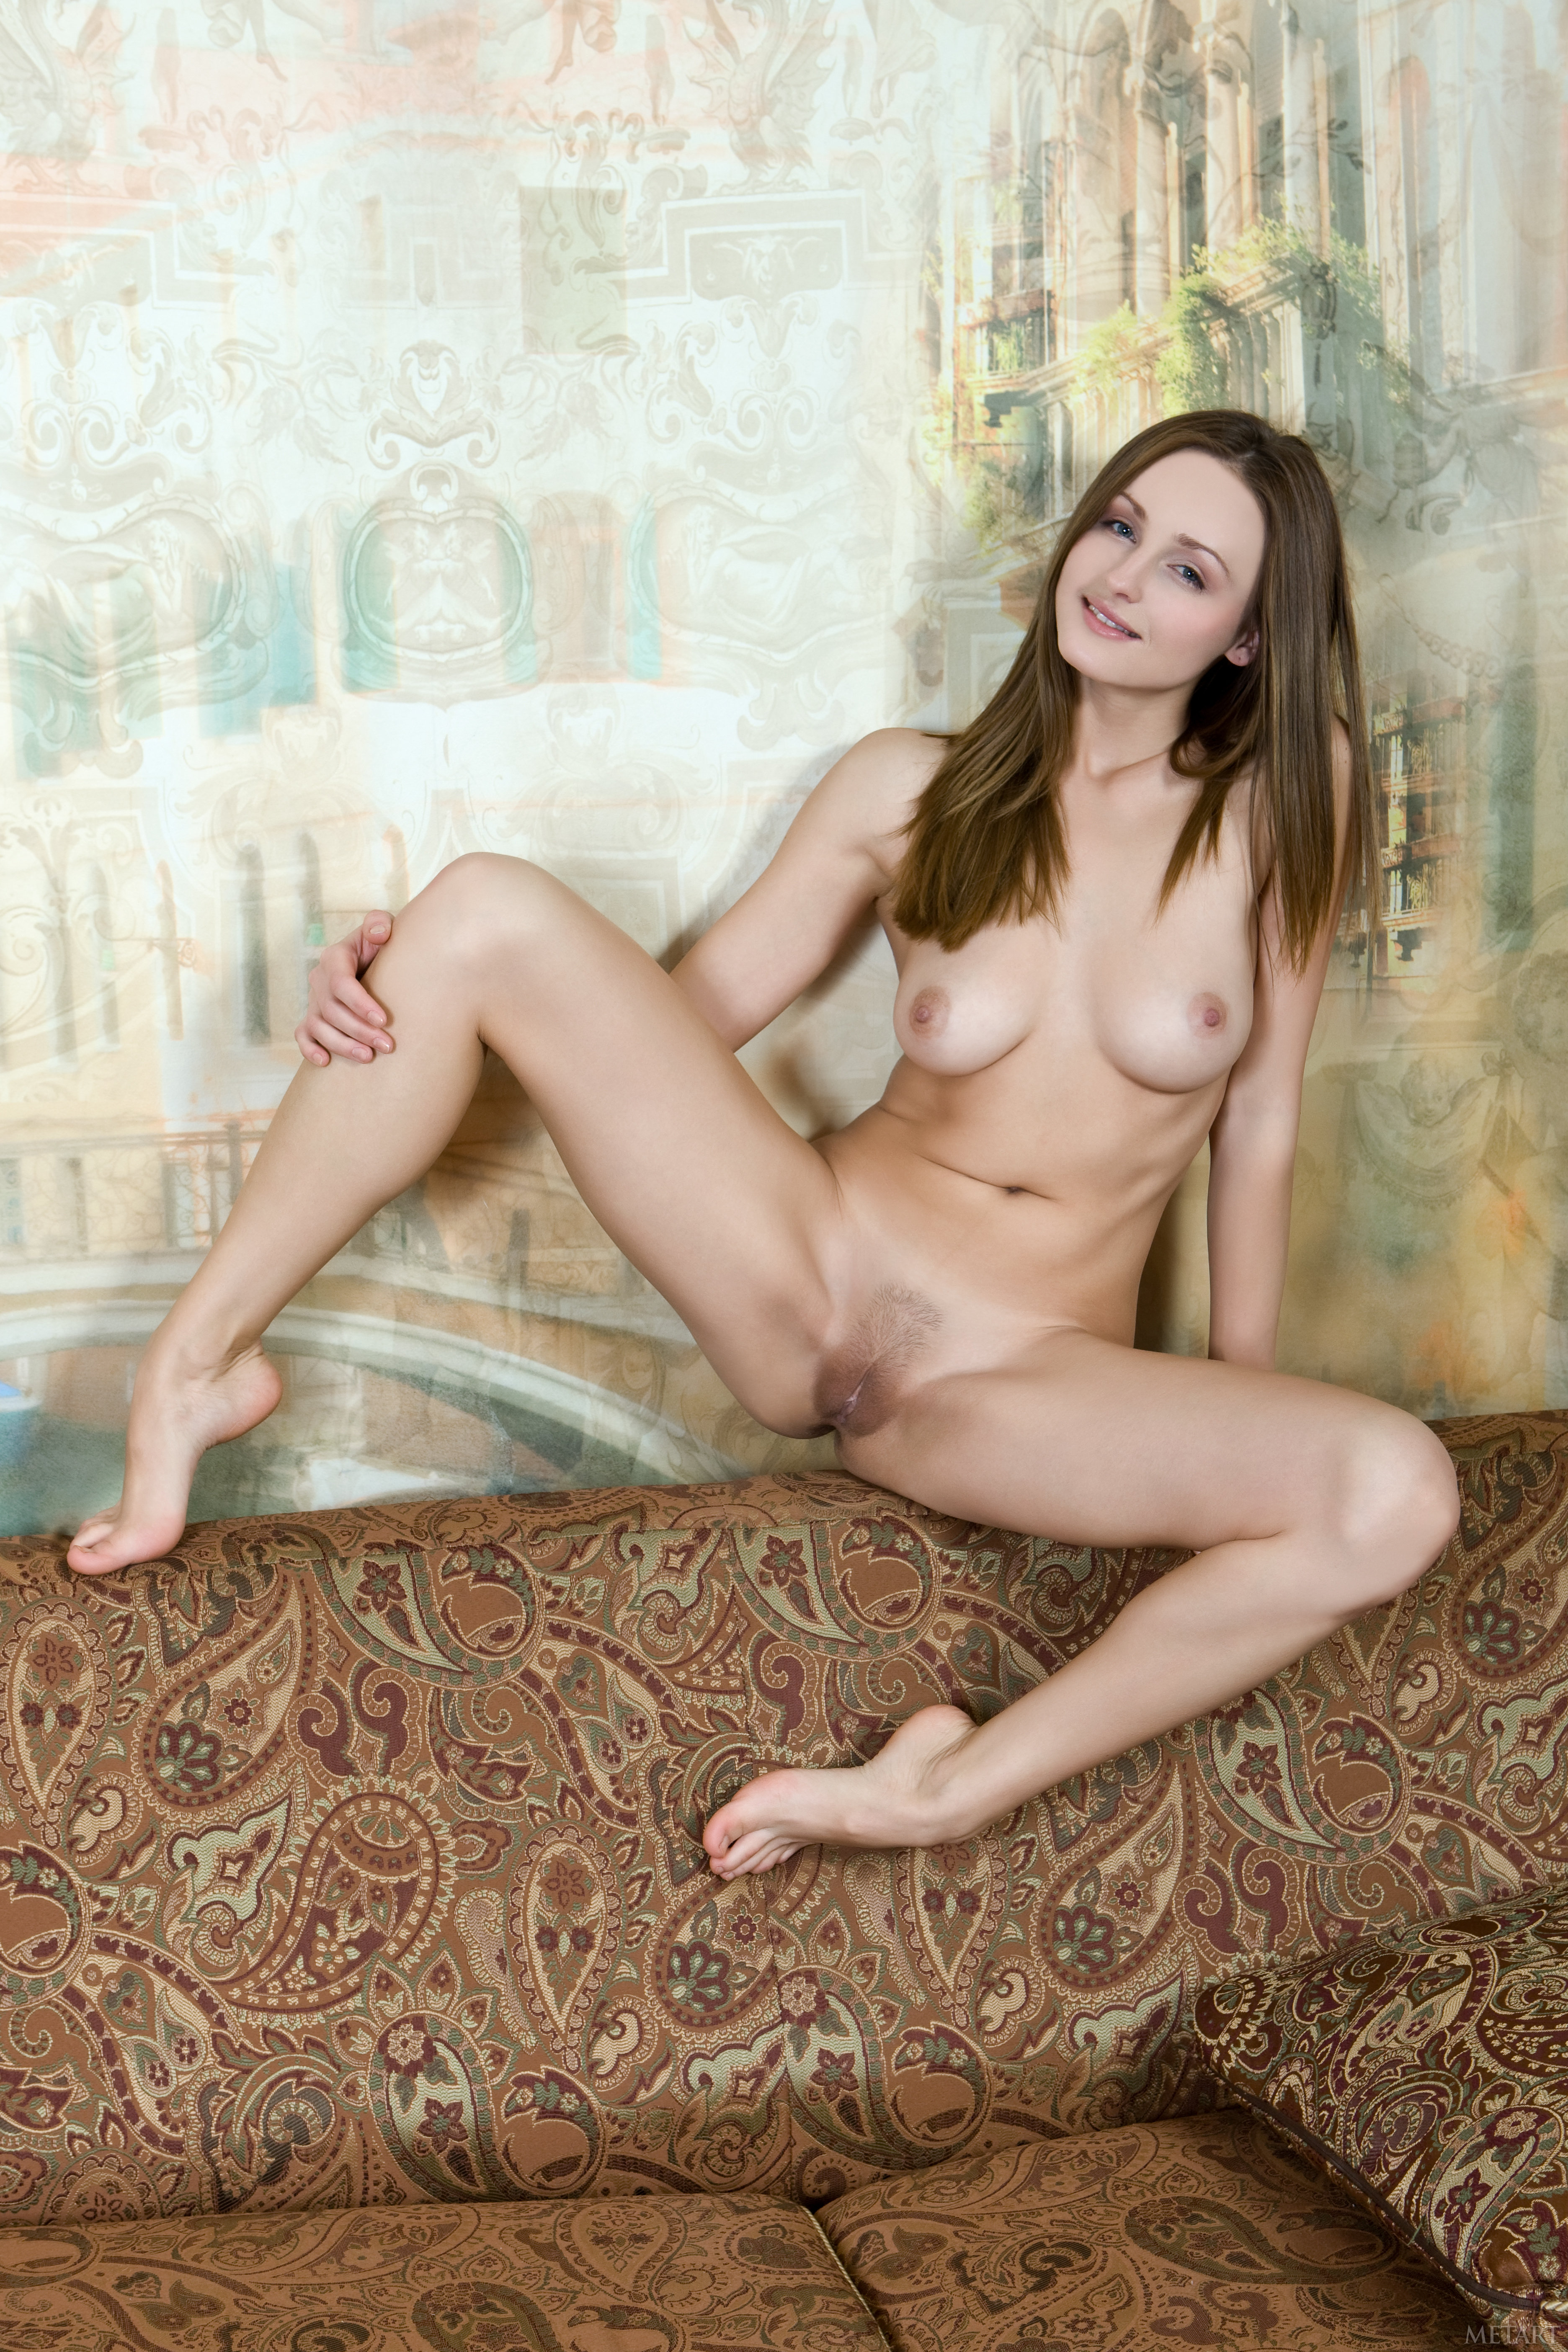 Harryporn pic hord fucked pussy